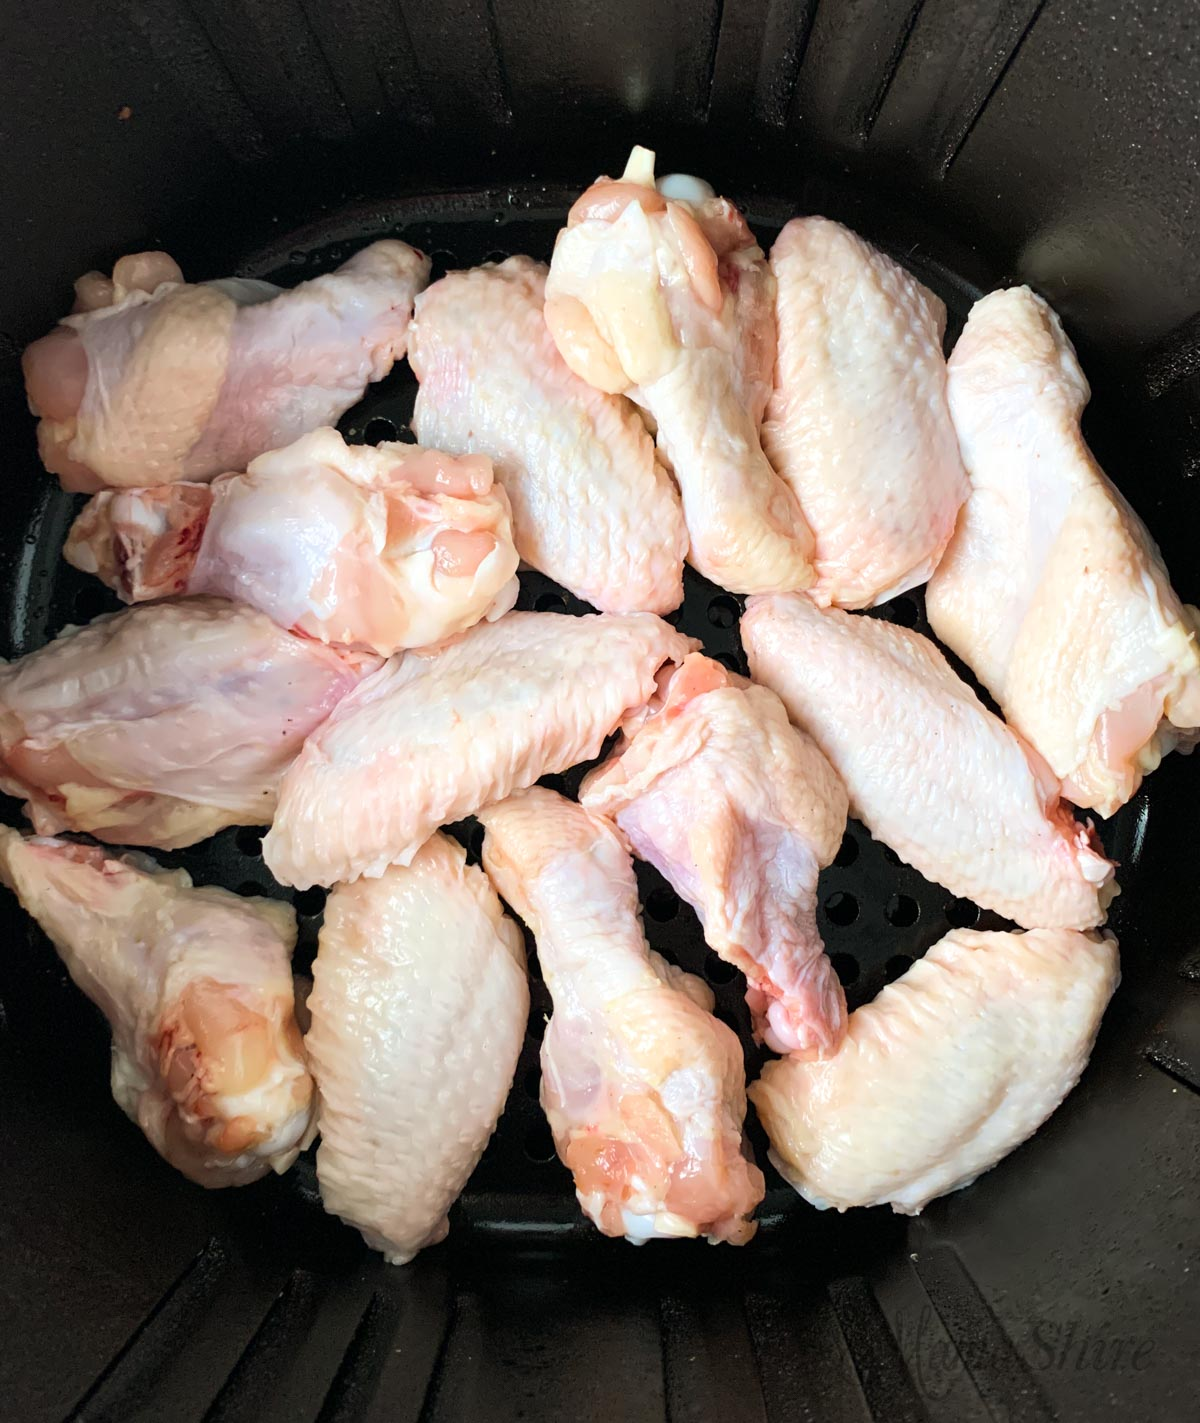 Chicken wings in an air fryer ready to cook.